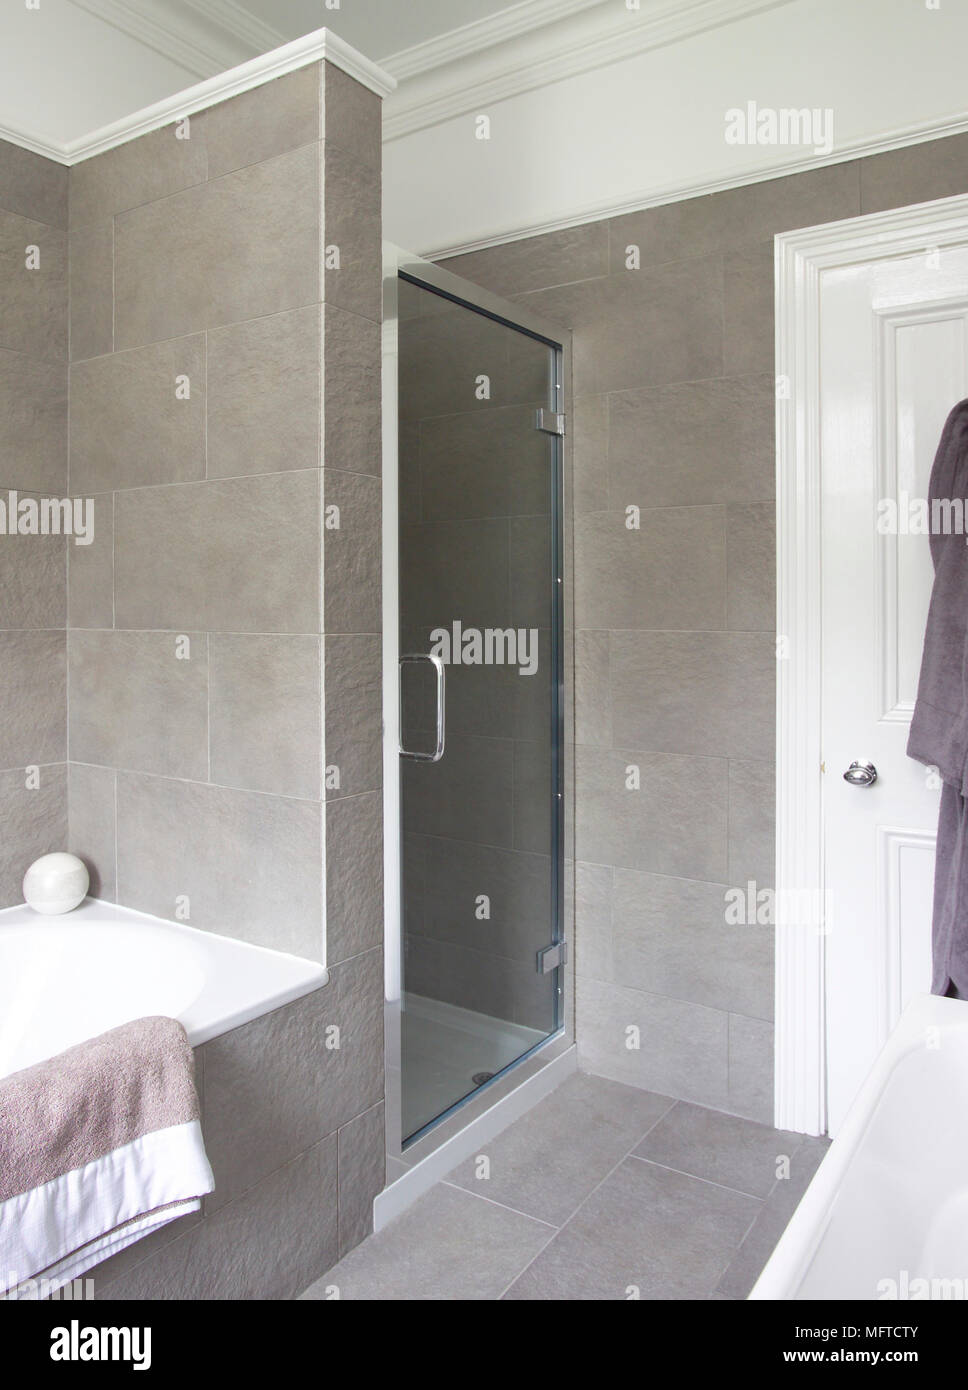 Built in shower cubicle in modern bathroom Stock Photo: 181860475 ...